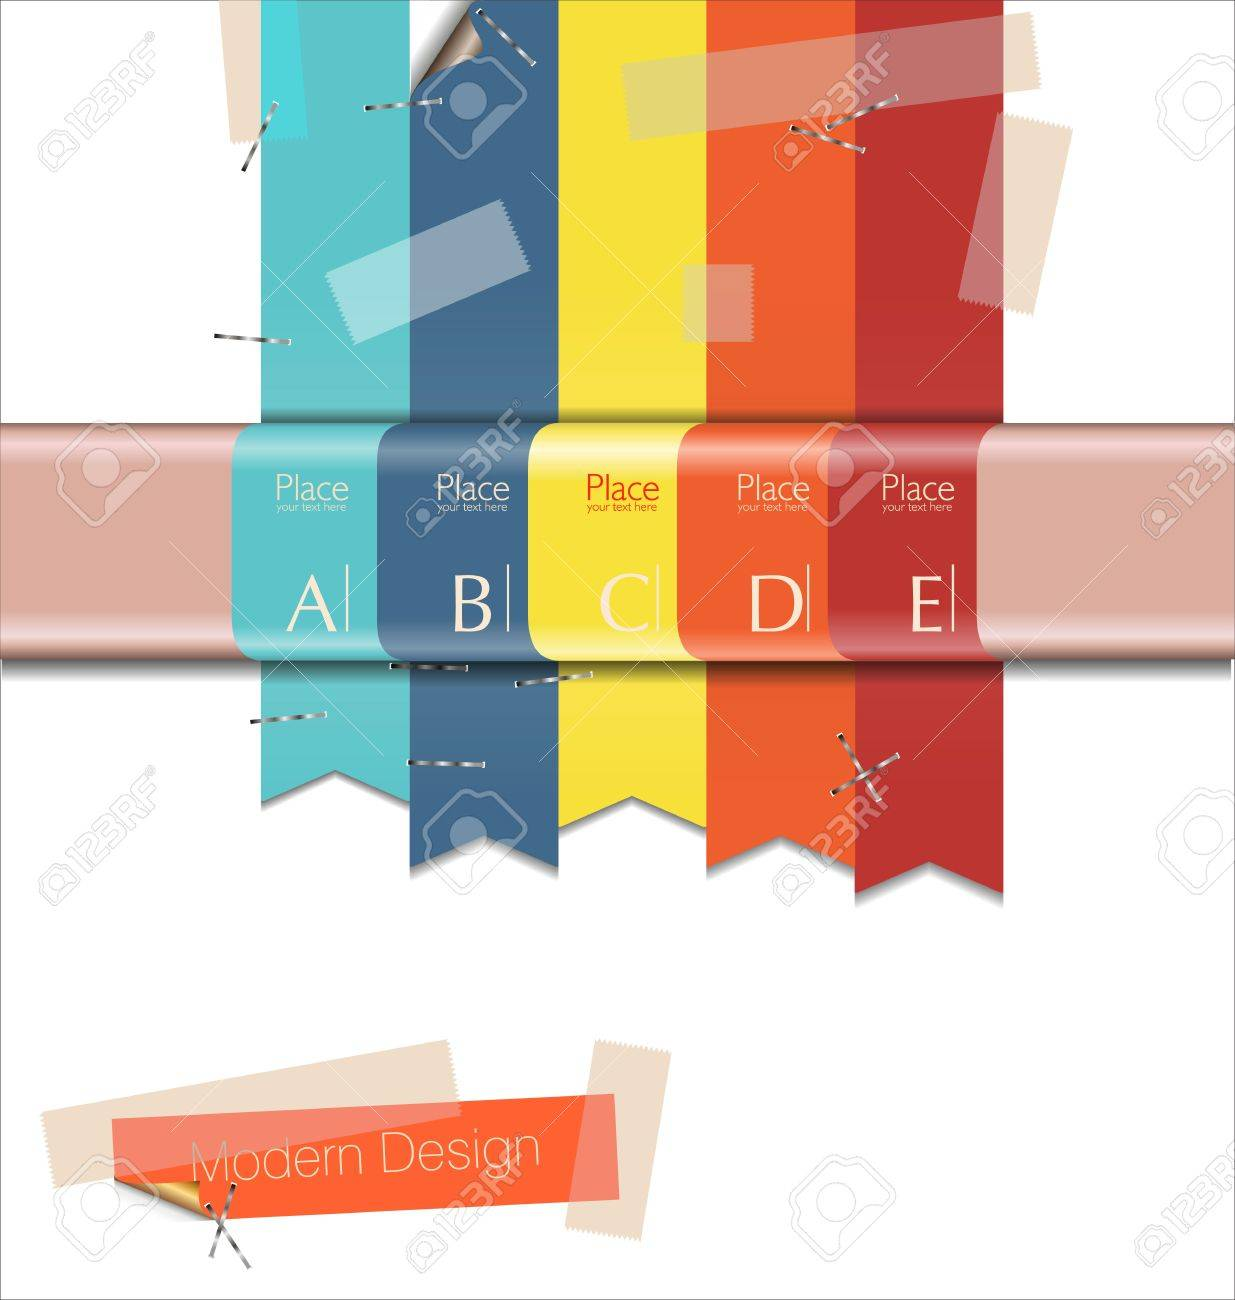 Modern Design template Stock Vector - 19566043